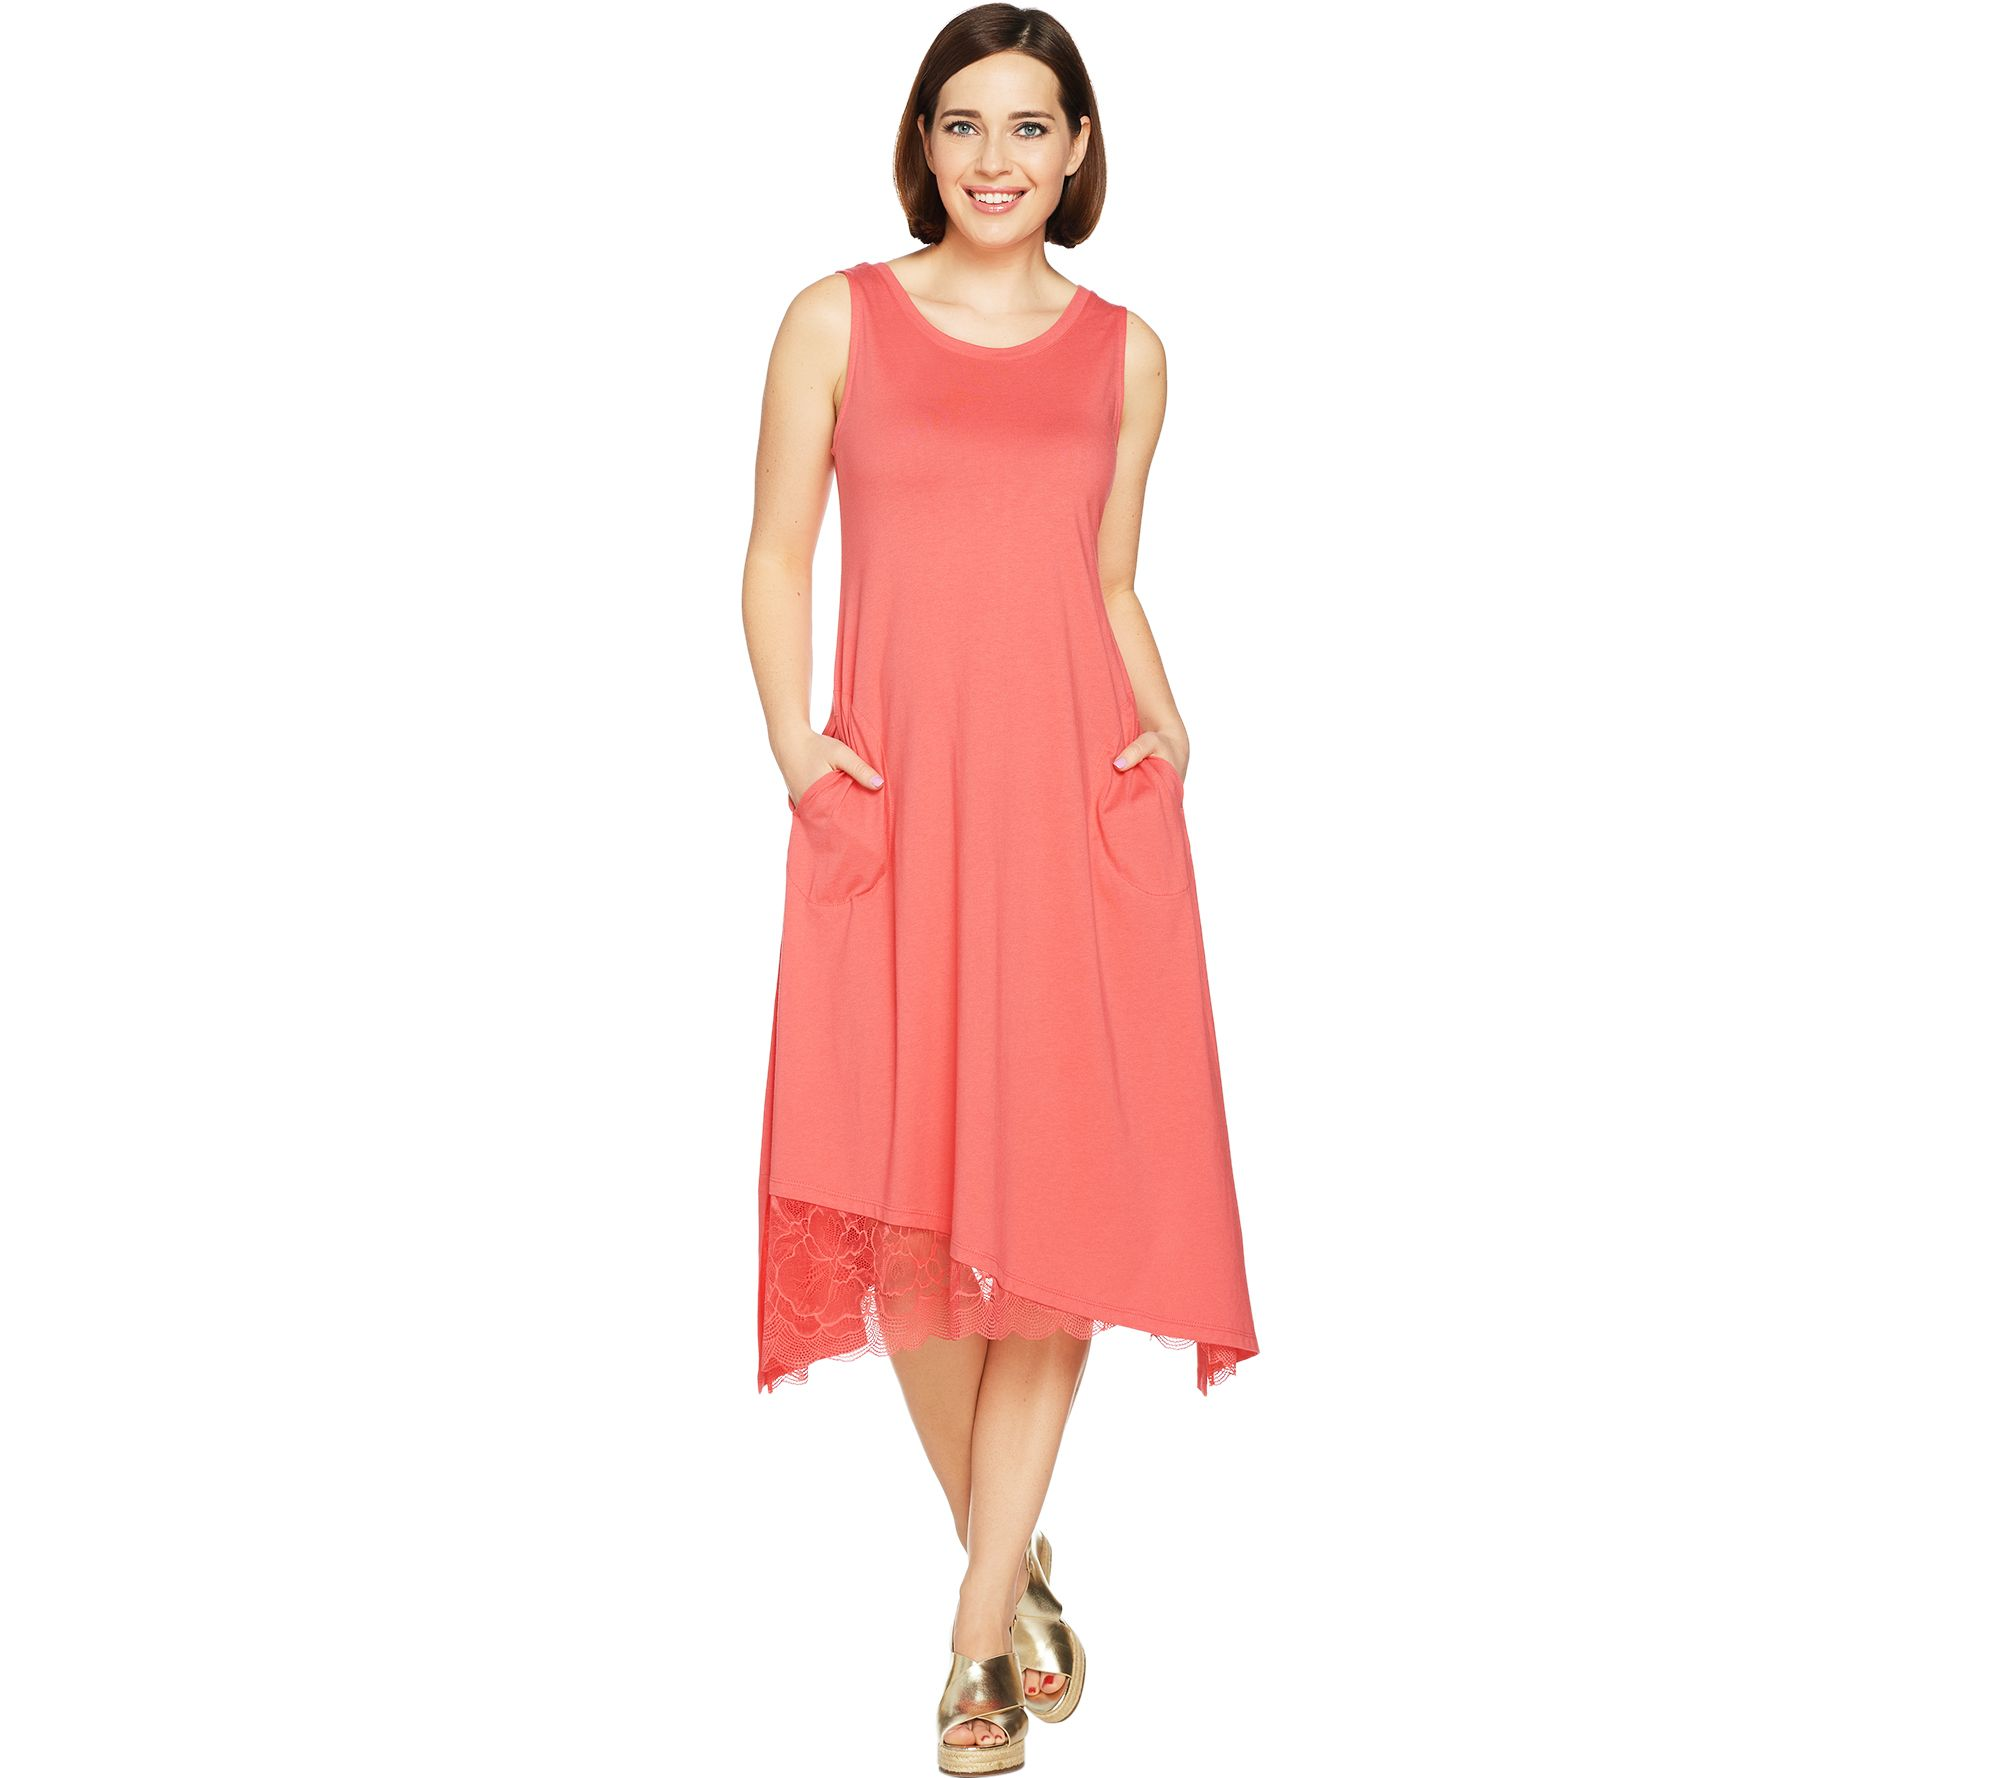 7ee63412a63 LOGO by Lori Goldstein Cotton Modal Knit Dress with Lace Hem - Page ...